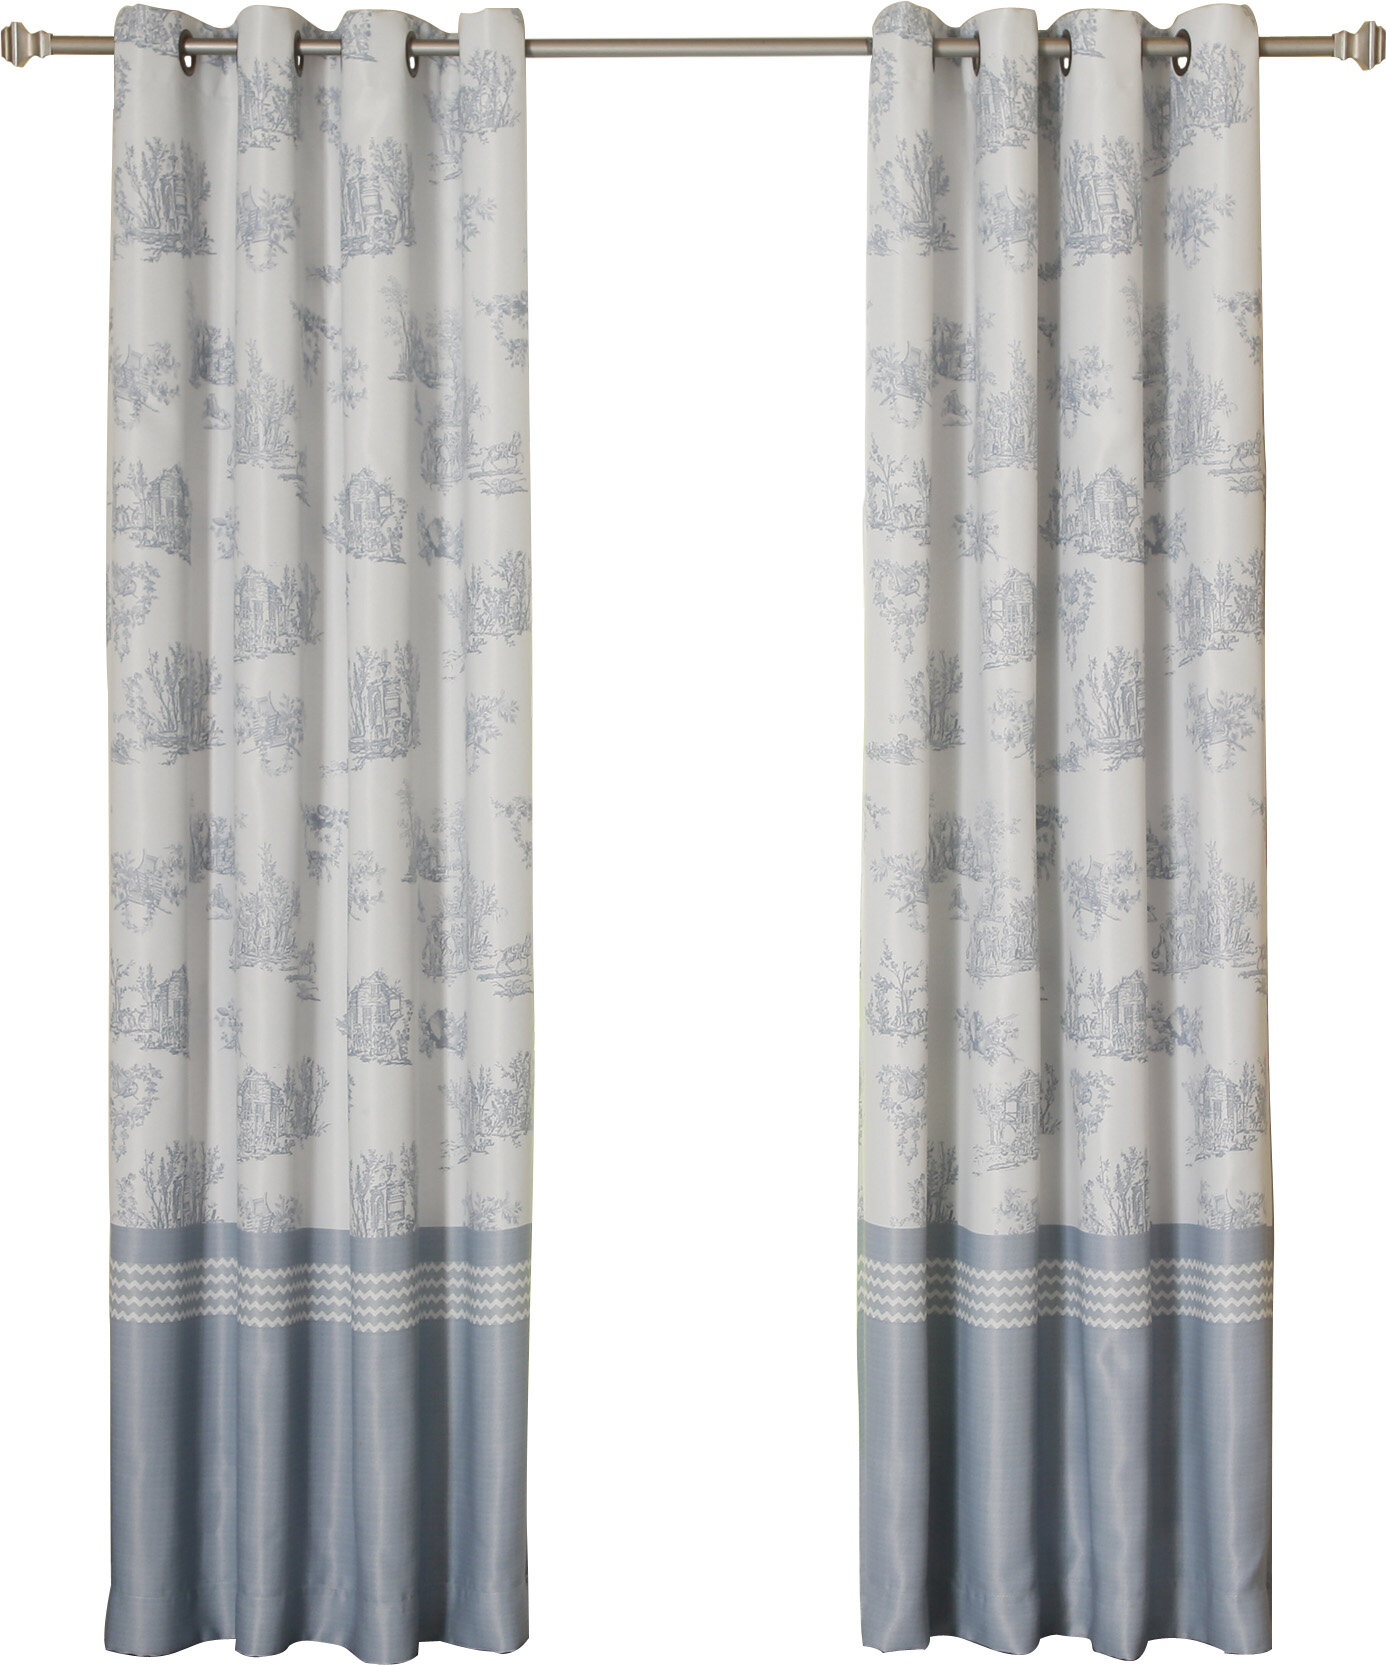 Grommet Toile Curtains Drapes You Ll Love In 2021 Wayfair